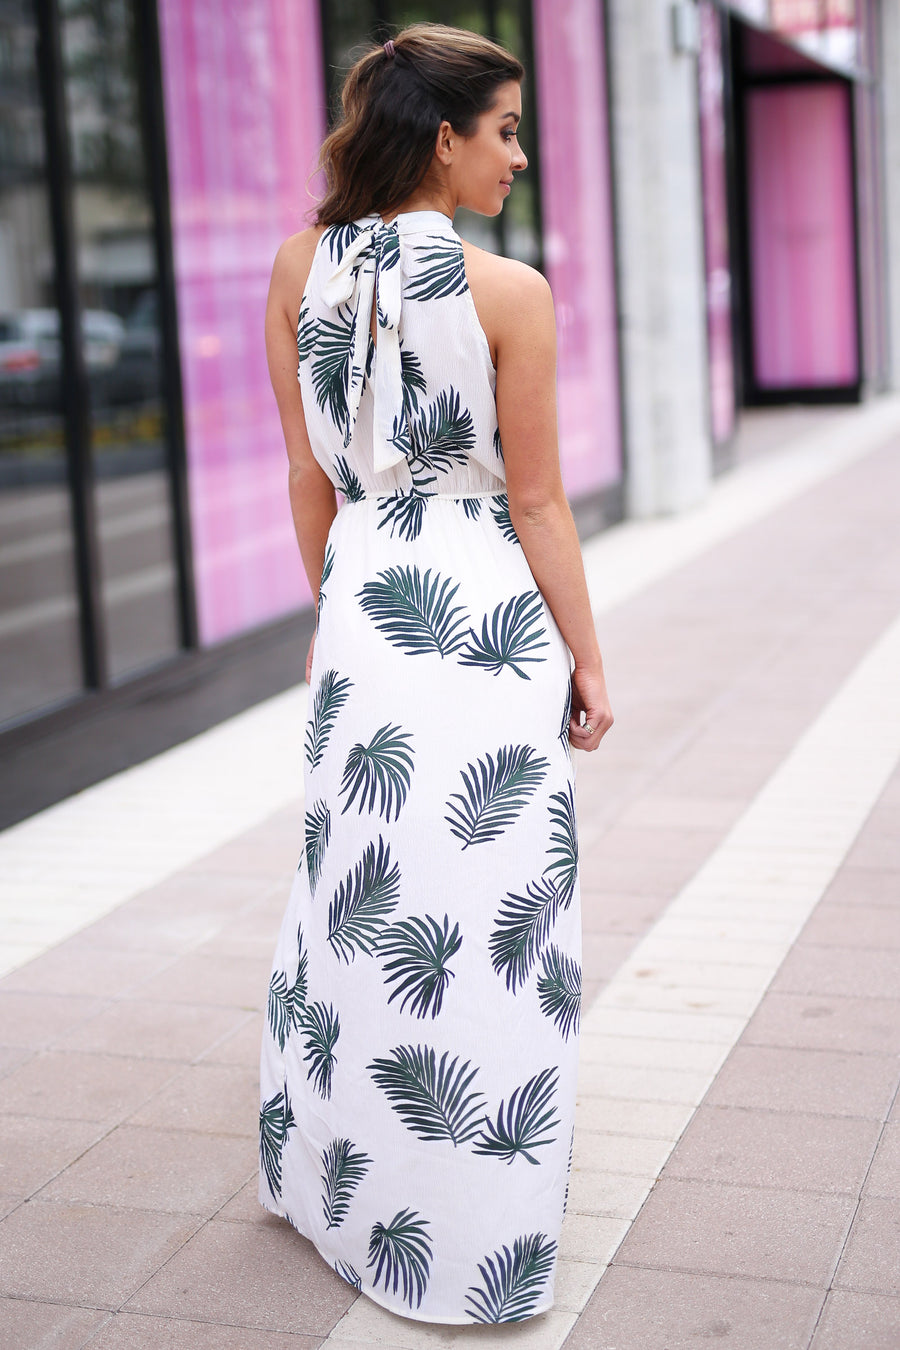 Under the Palms Maxi Dress - Ivory palm leaf print maxi dress, side, Closet Candy Boutique